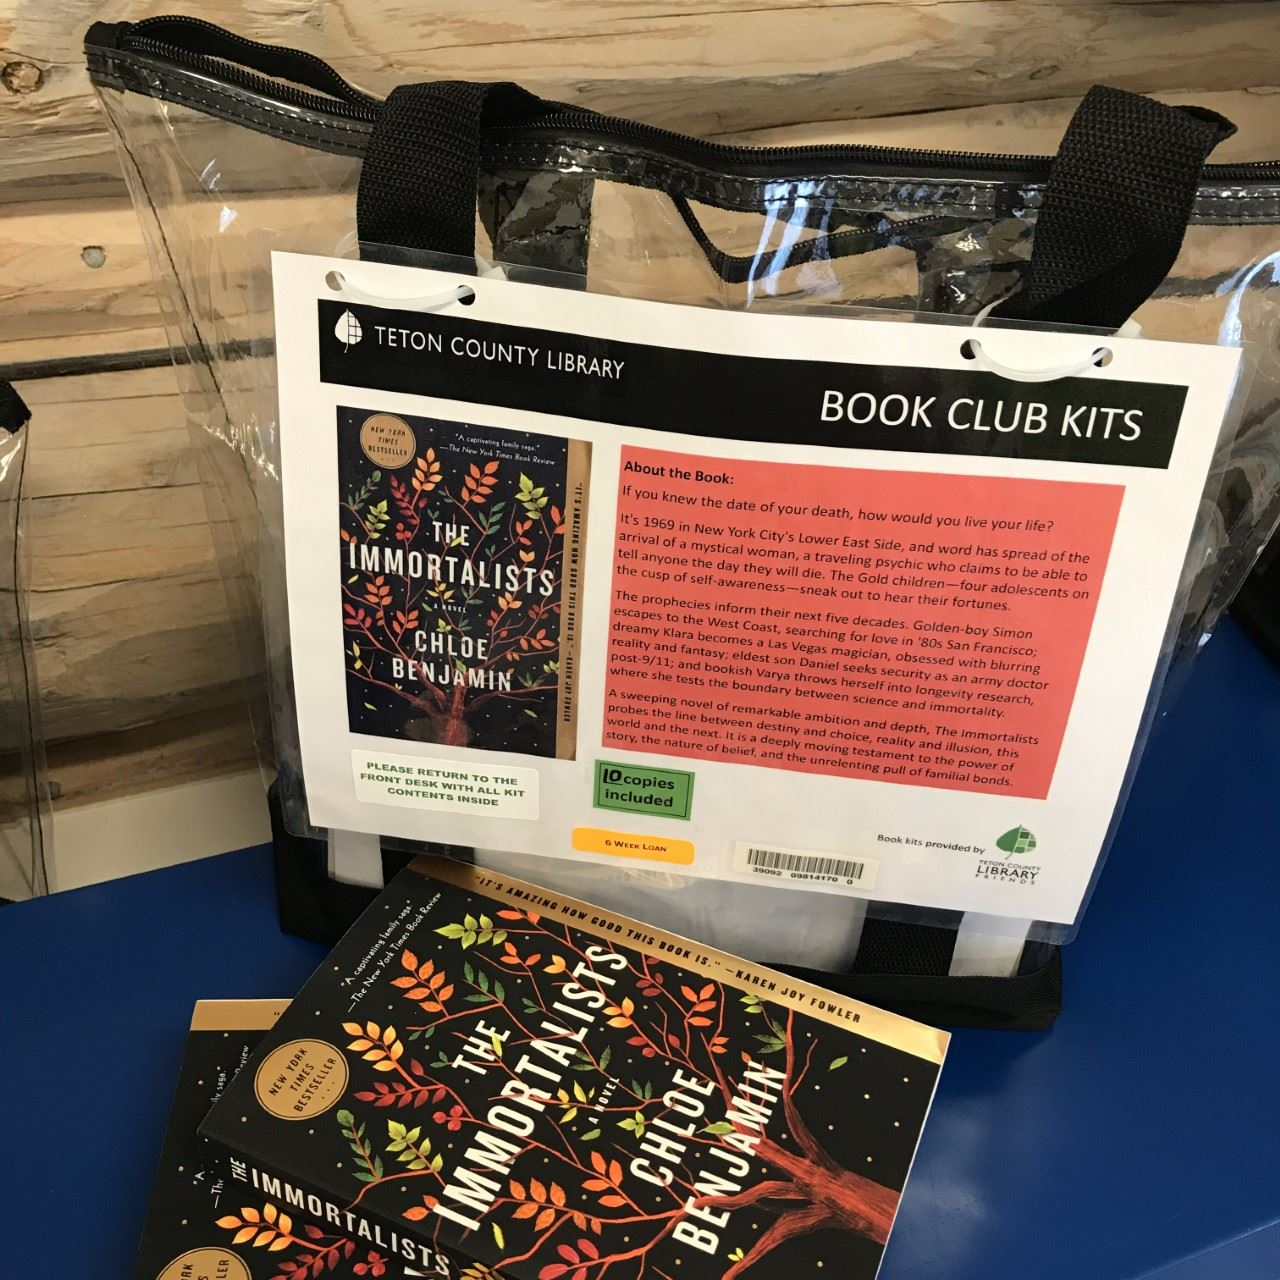 image of a book club kit